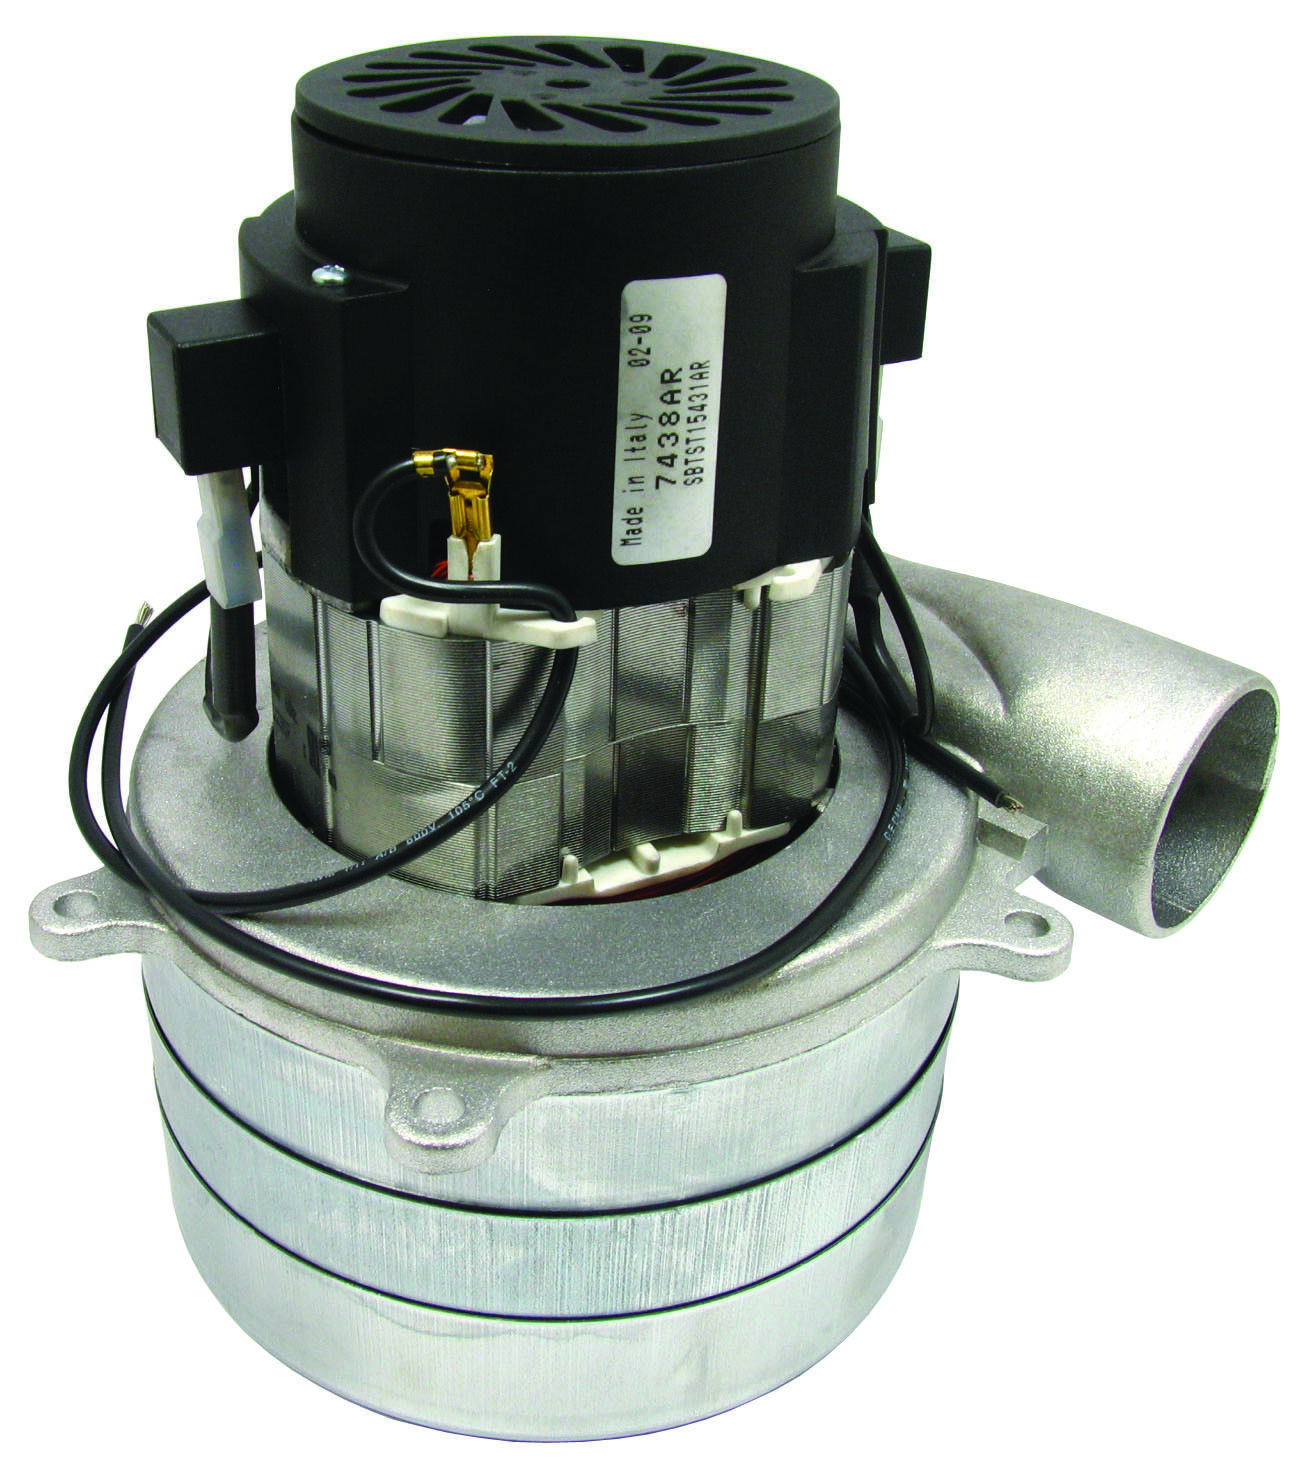 1200W 240V 3 Stage Tangential Motor